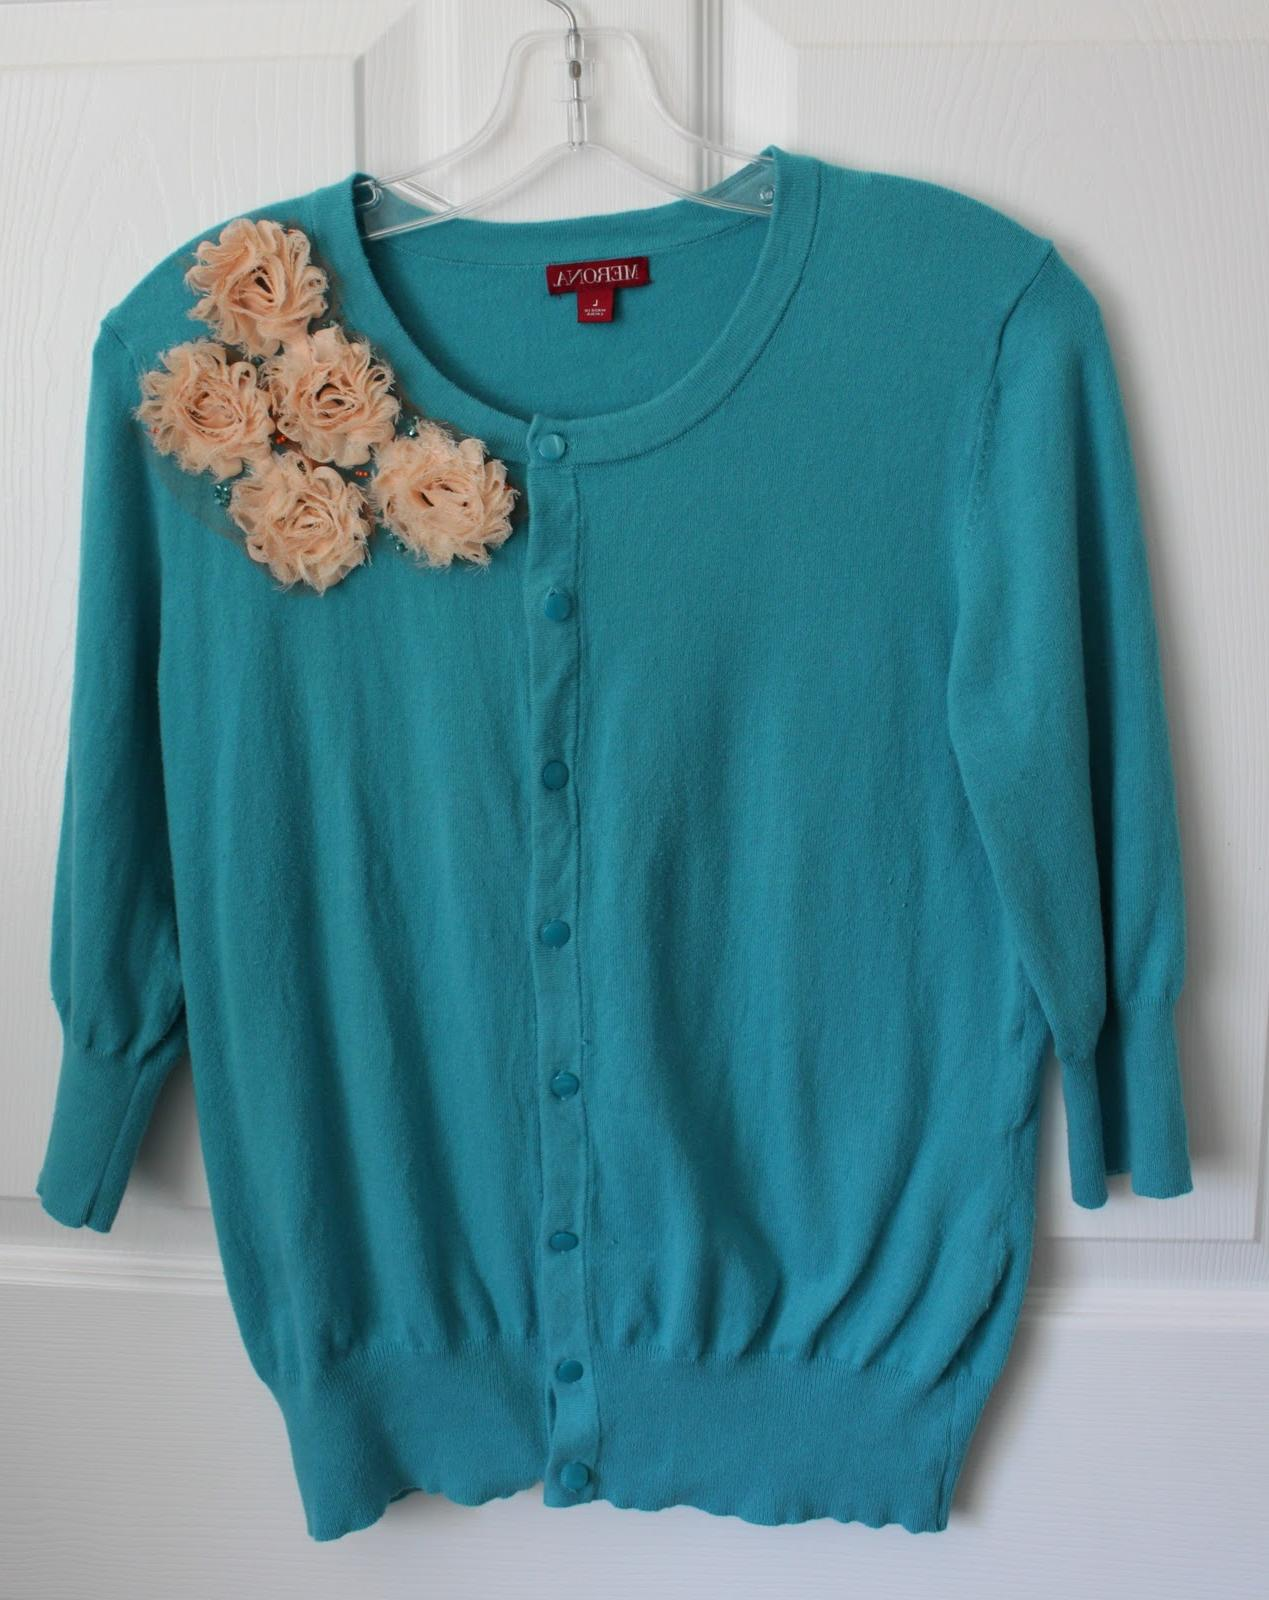 was the turquoise cardi: